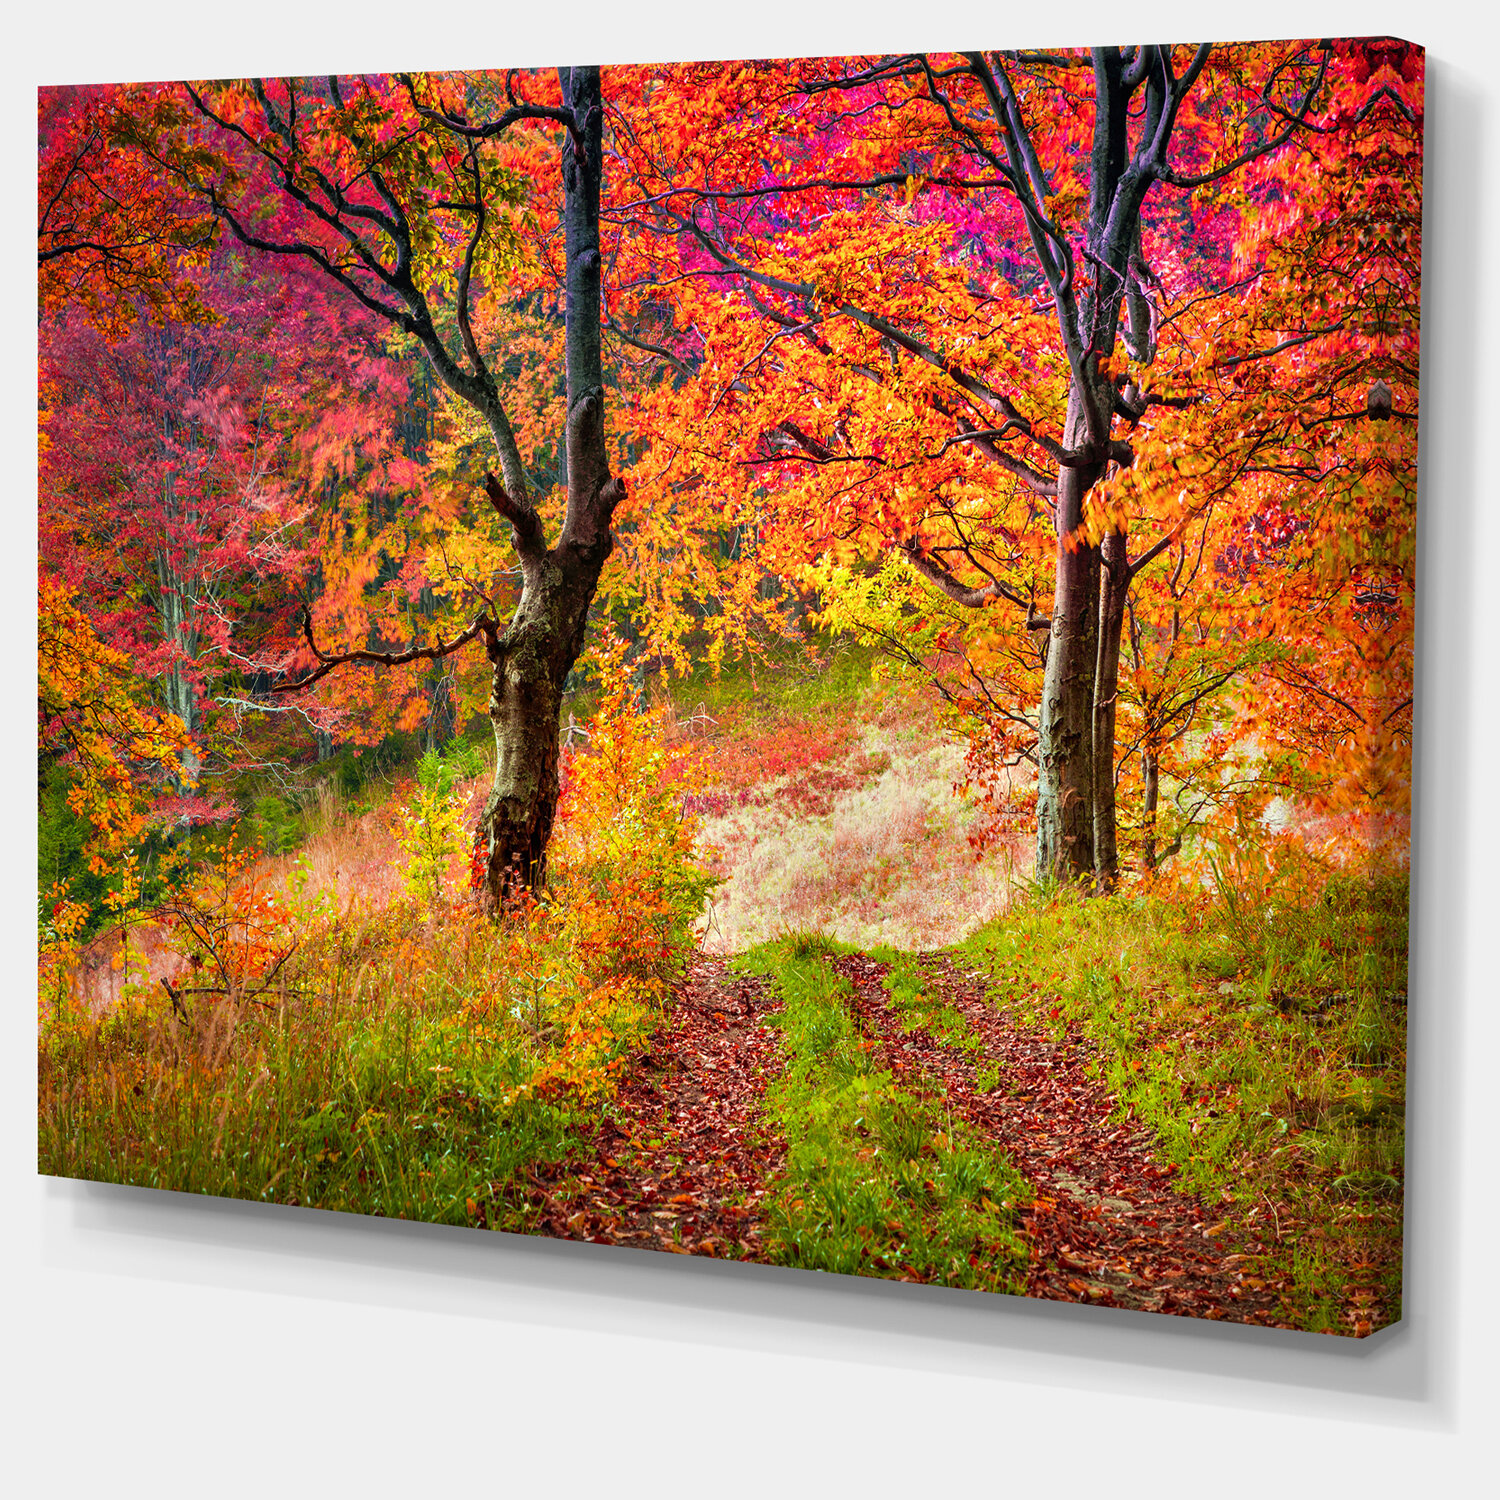 Designart Bright Colorful Fall Trees In Forest Wrapped Canvas Photograph Print Wayfair